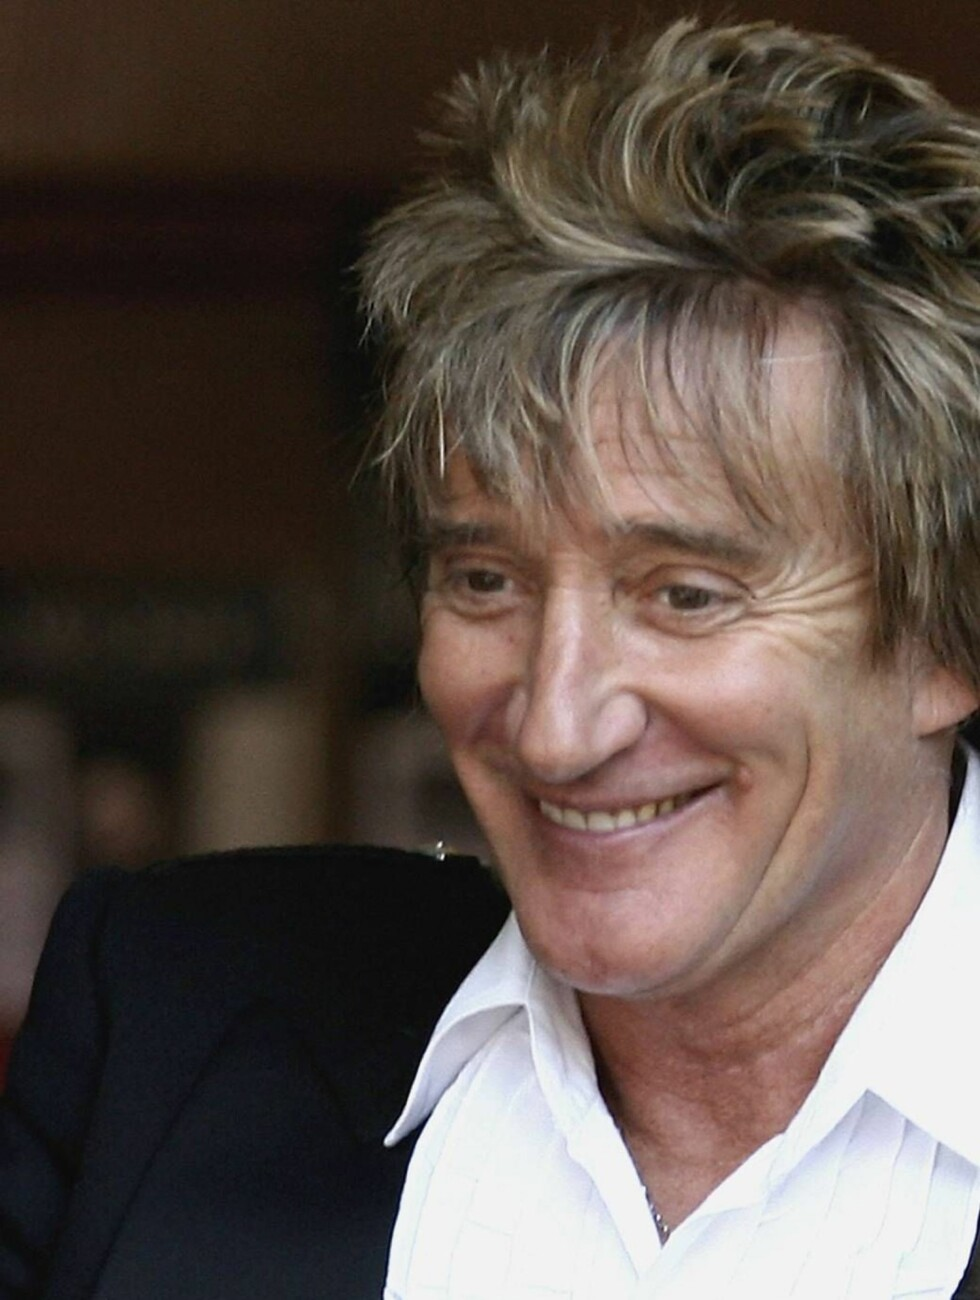 EDINBURGH, UNITED KINGDOM - JUNE 25:  Rod Stewart leaves South Leith Parish Church after attending the christening of his son Alistair on June 25, 2006, Edinburgh in Scotland.  (Photo by Jeff J Mitchell/Getty Images) *** Local Caption ***  Rod Stewart   * Foto: All Over Press